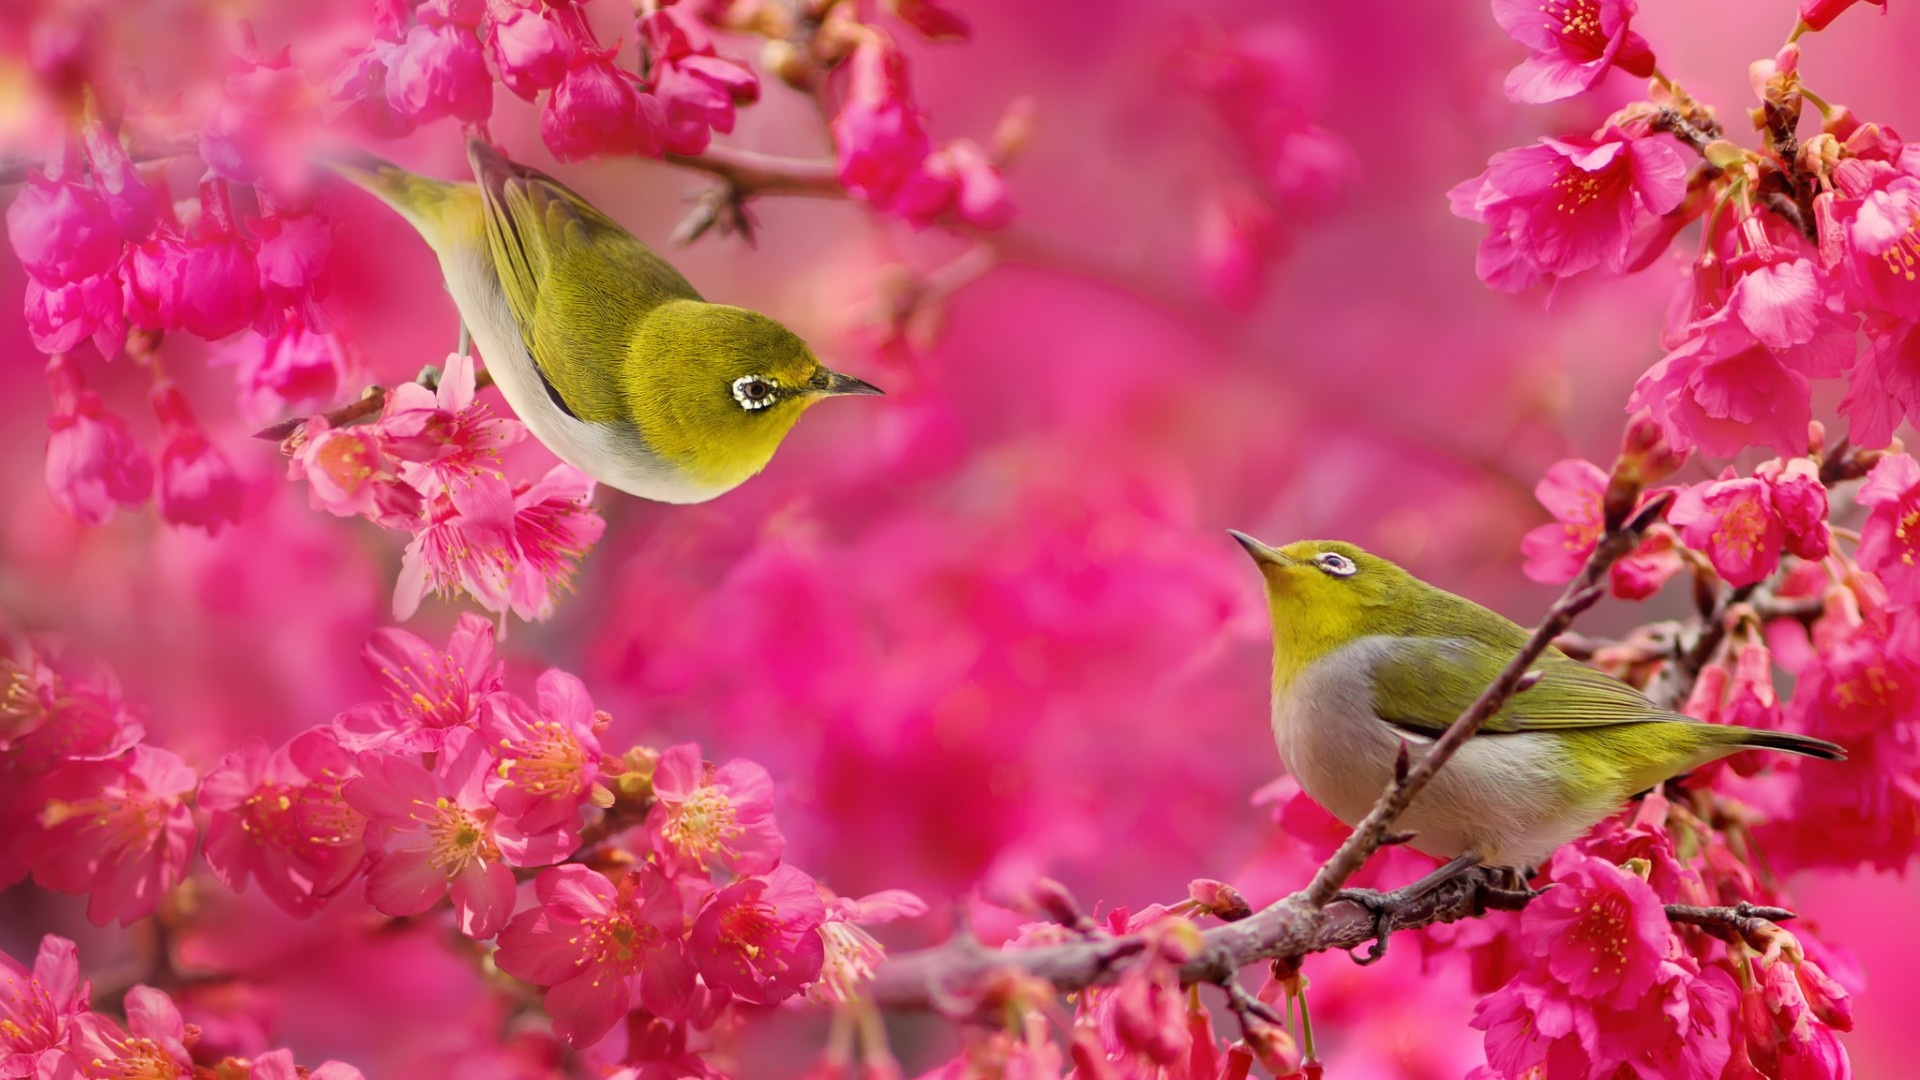 Beautiful Pictures Of Flowers And Butterflies Birds Japanese White Eye Bird Raspberry Flowers Wallpapers